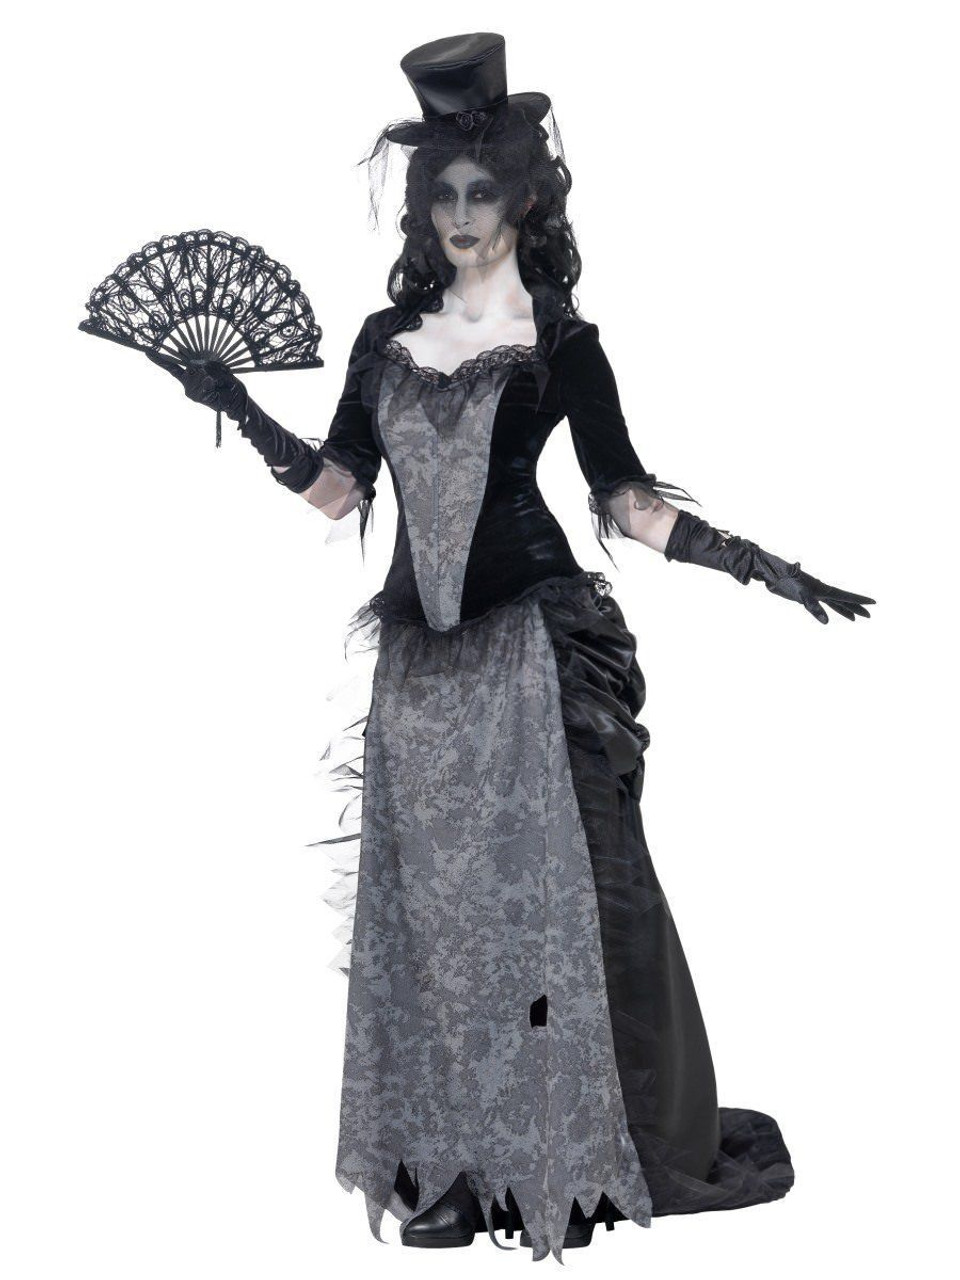 Charades Heartbroken Clown Gothic Ghostly Adult Womens Halloween Costume 03094